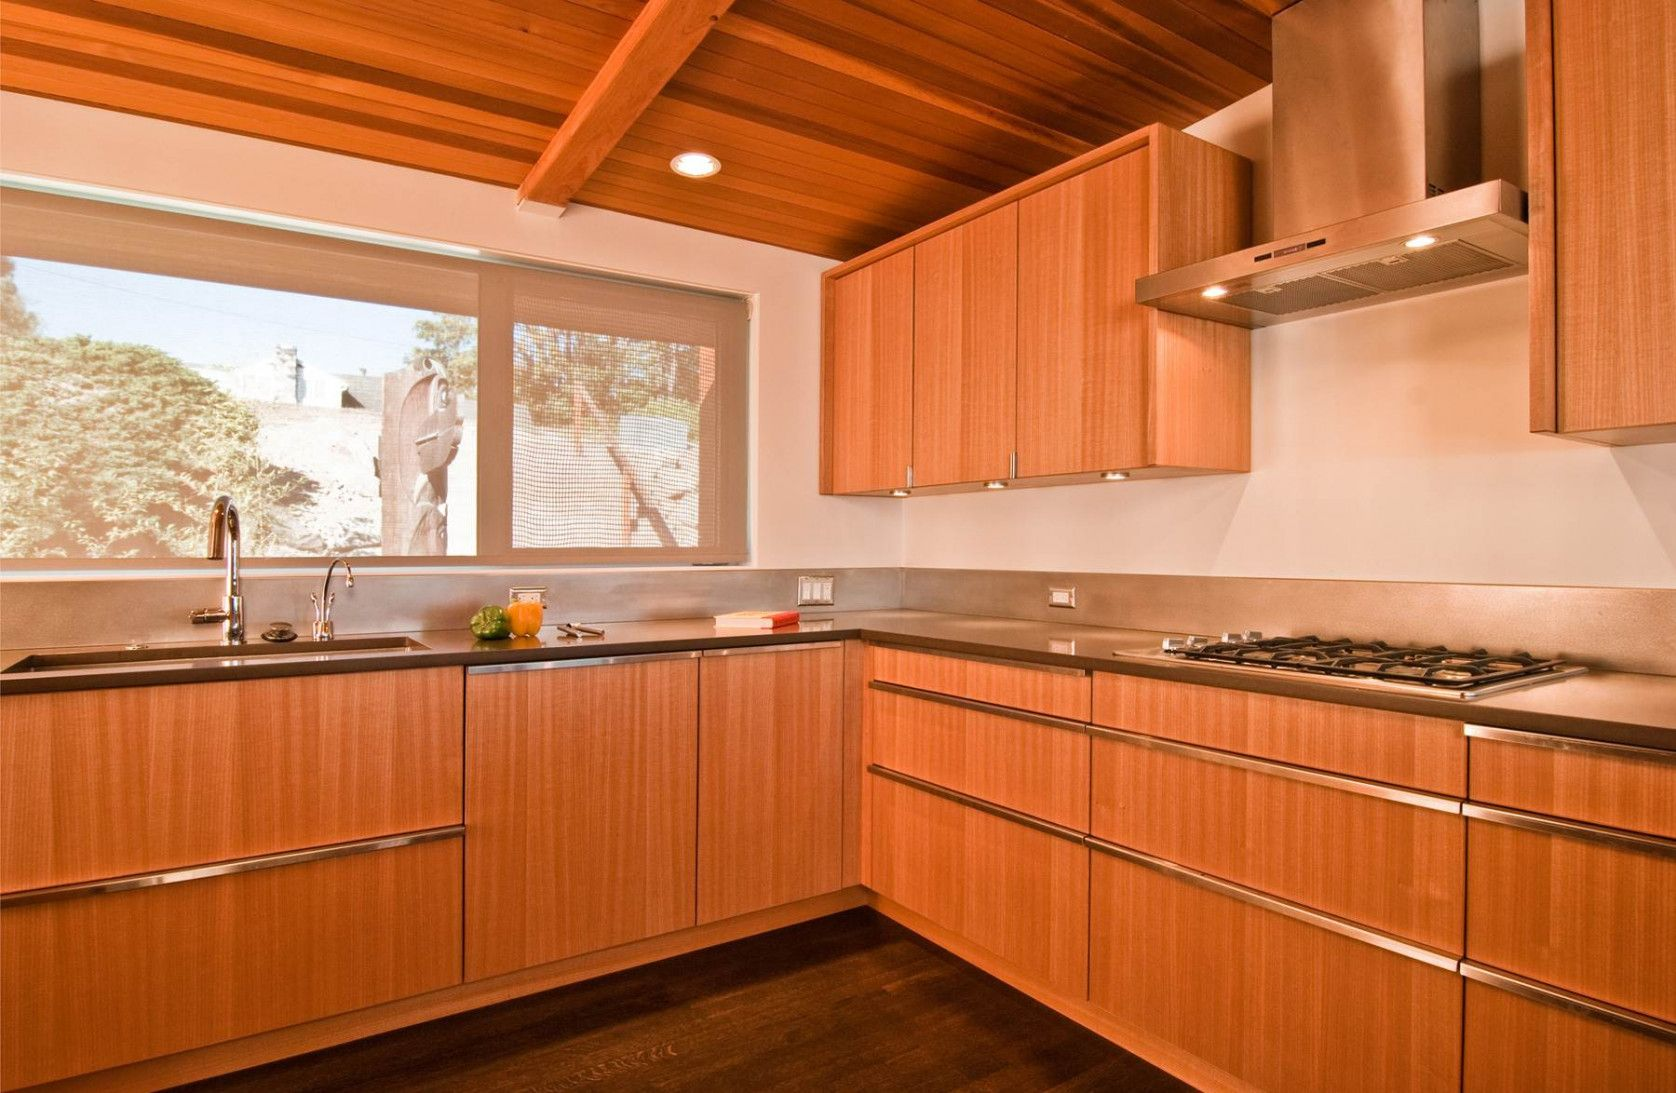 How To Clean Maple Cabinets Tcworks Org